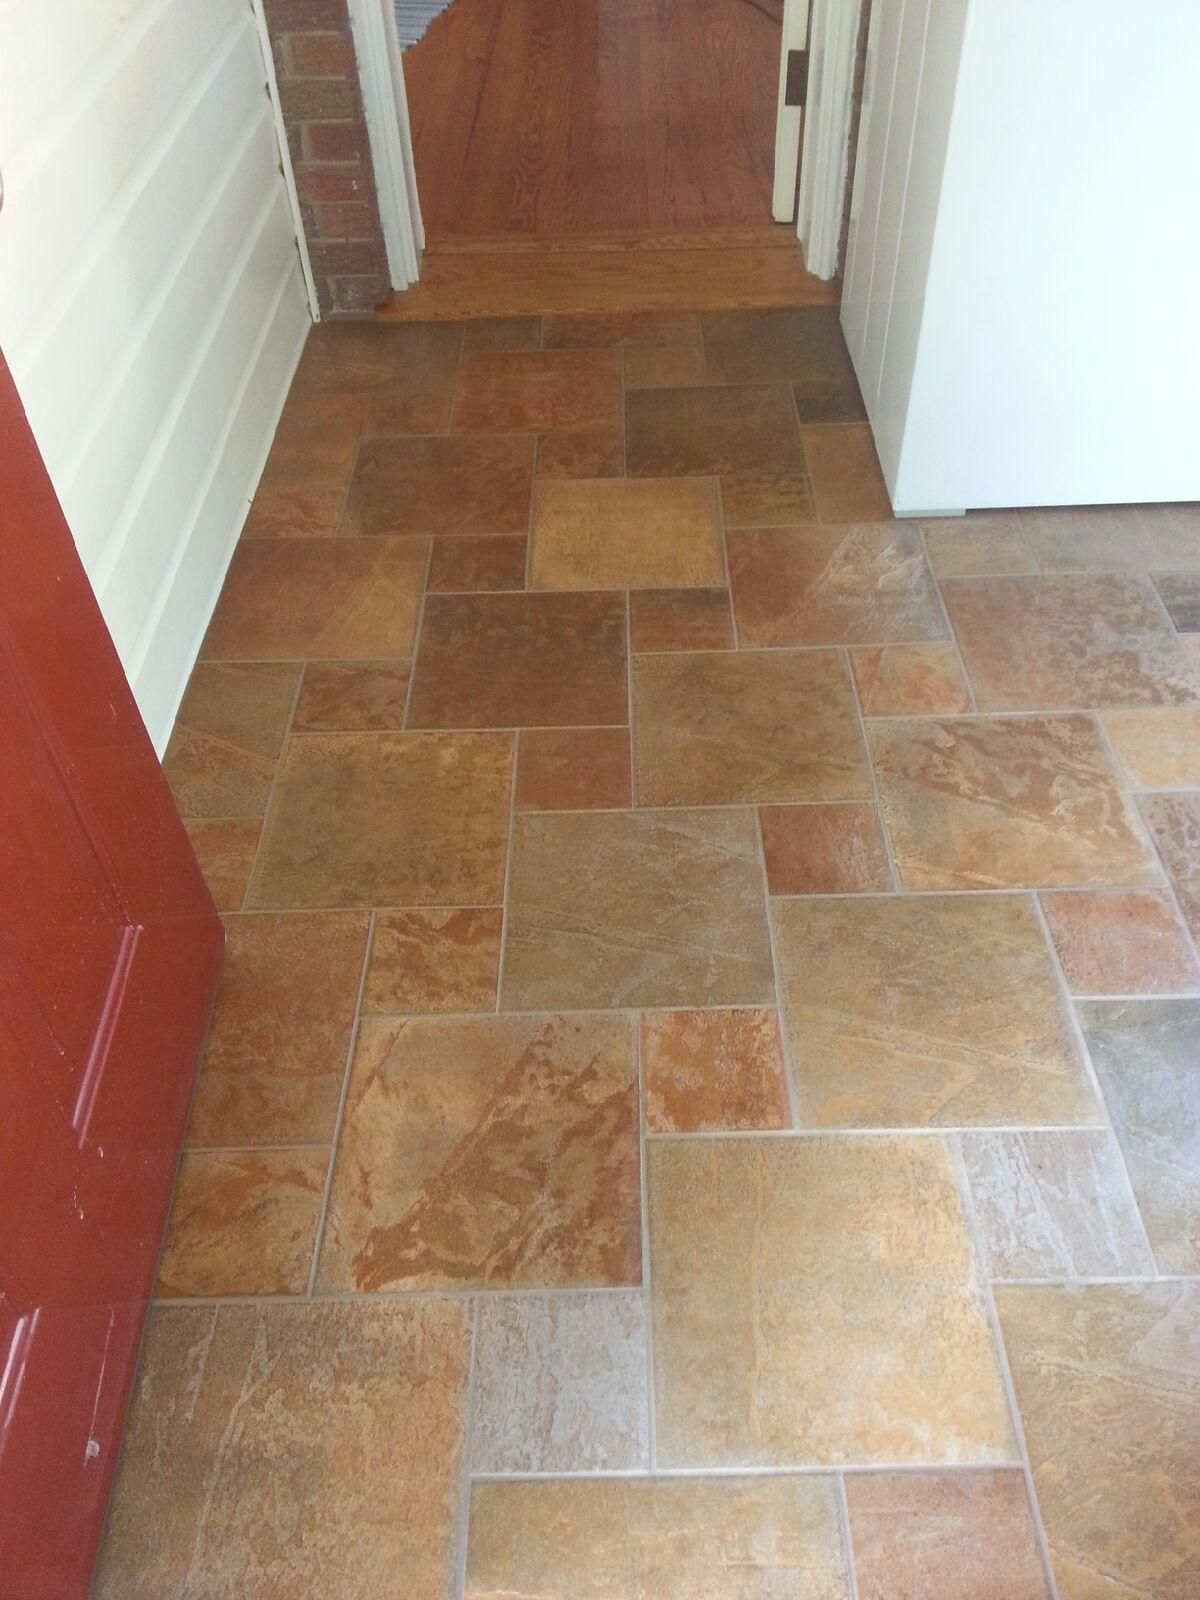 Modular Tile In An Entry 6x6 12x12 Tile Flooring Pinterest